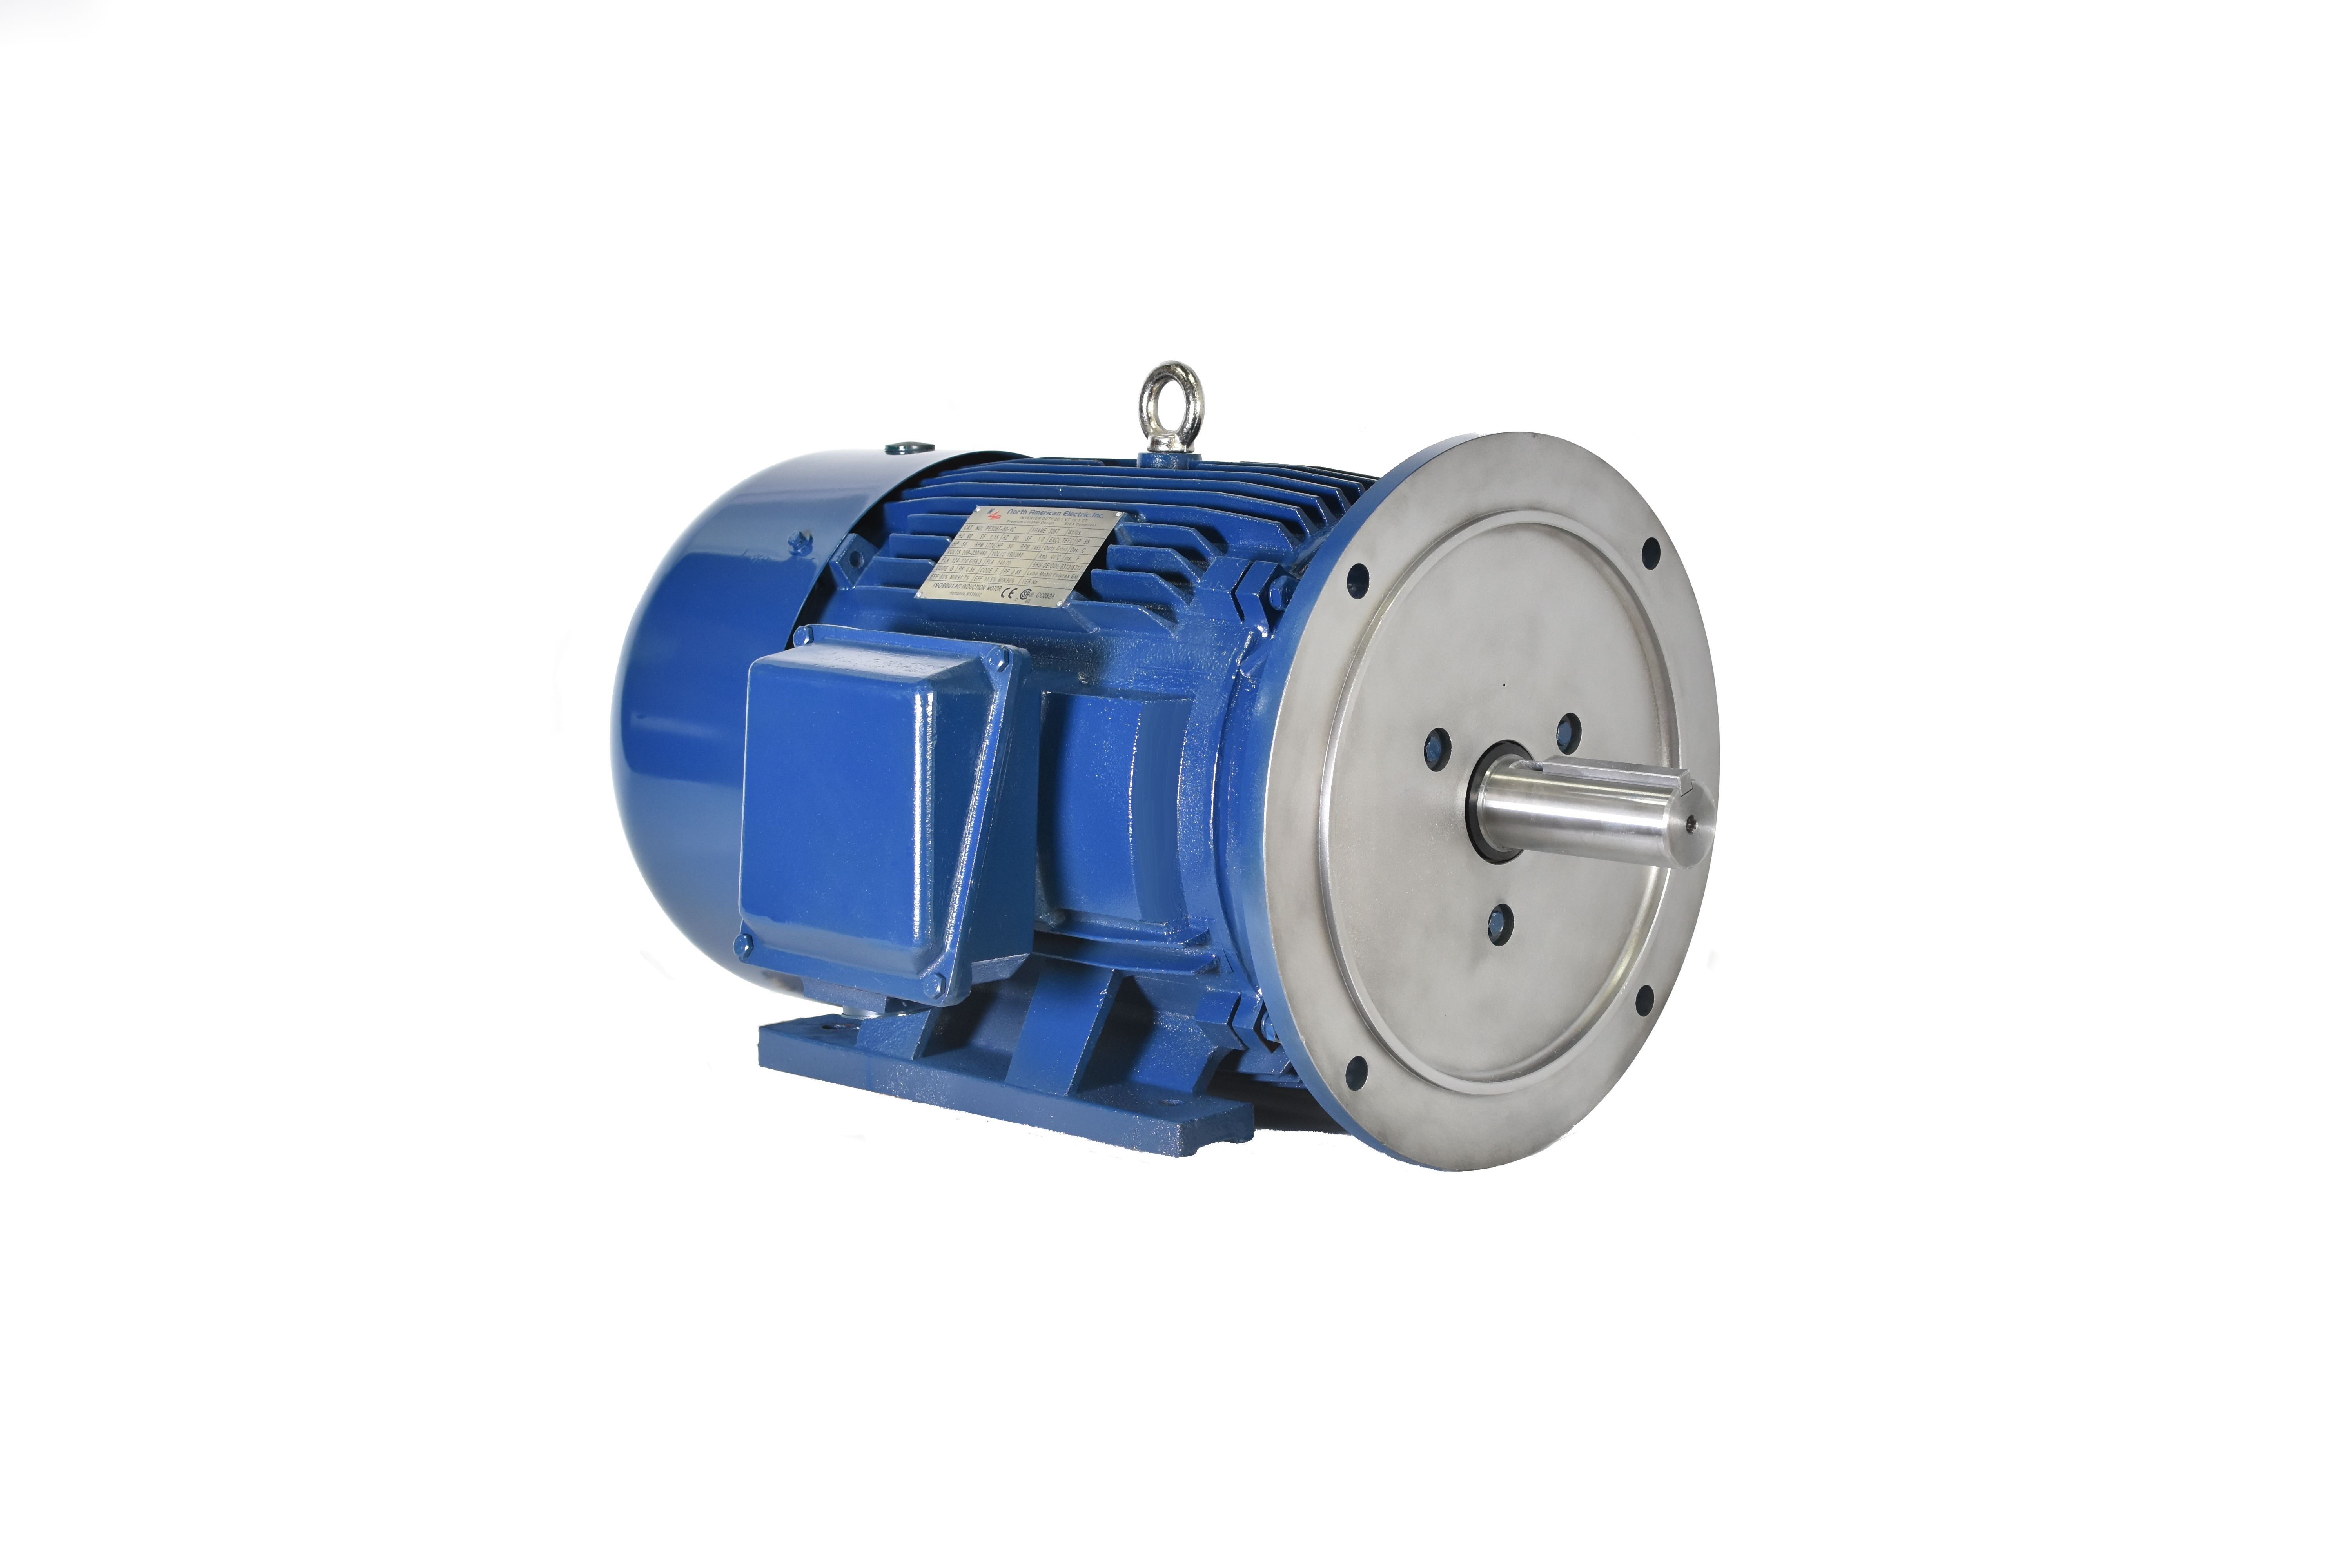 5 Hp Electric Motor >> 5 Hp 184td Electric Motor 1800 Rpm 3 Phase 208 230 460 Totally Enclosed